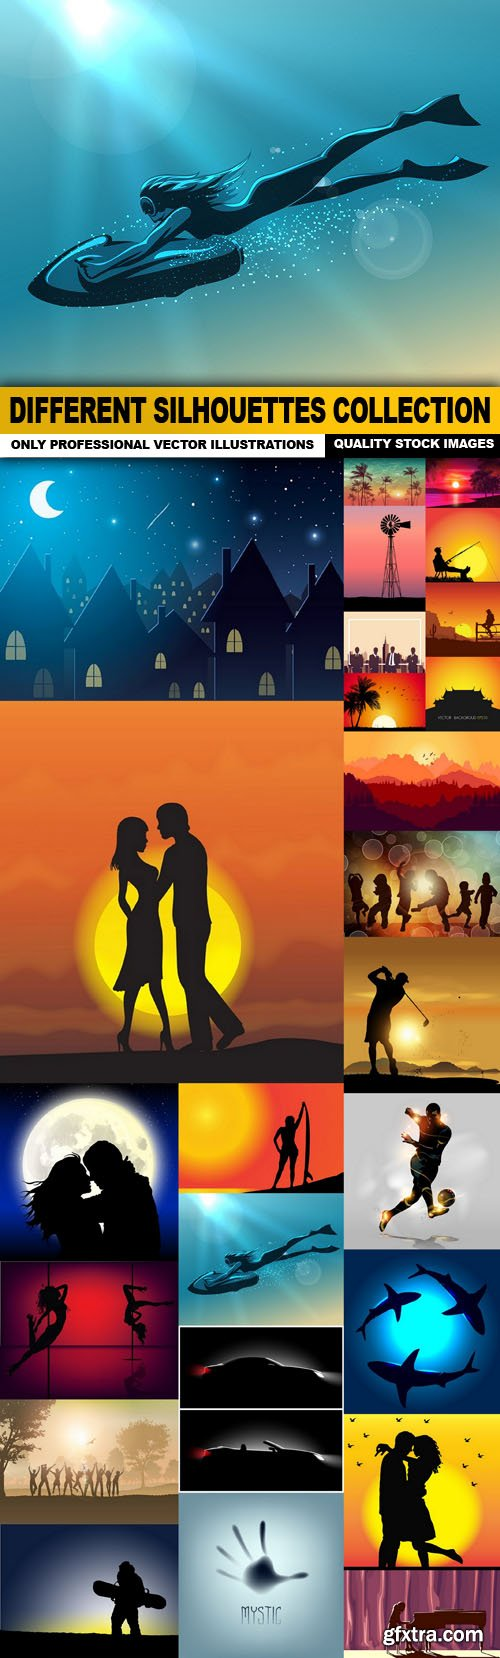 Different Silhouettes Collection - 25 Vector